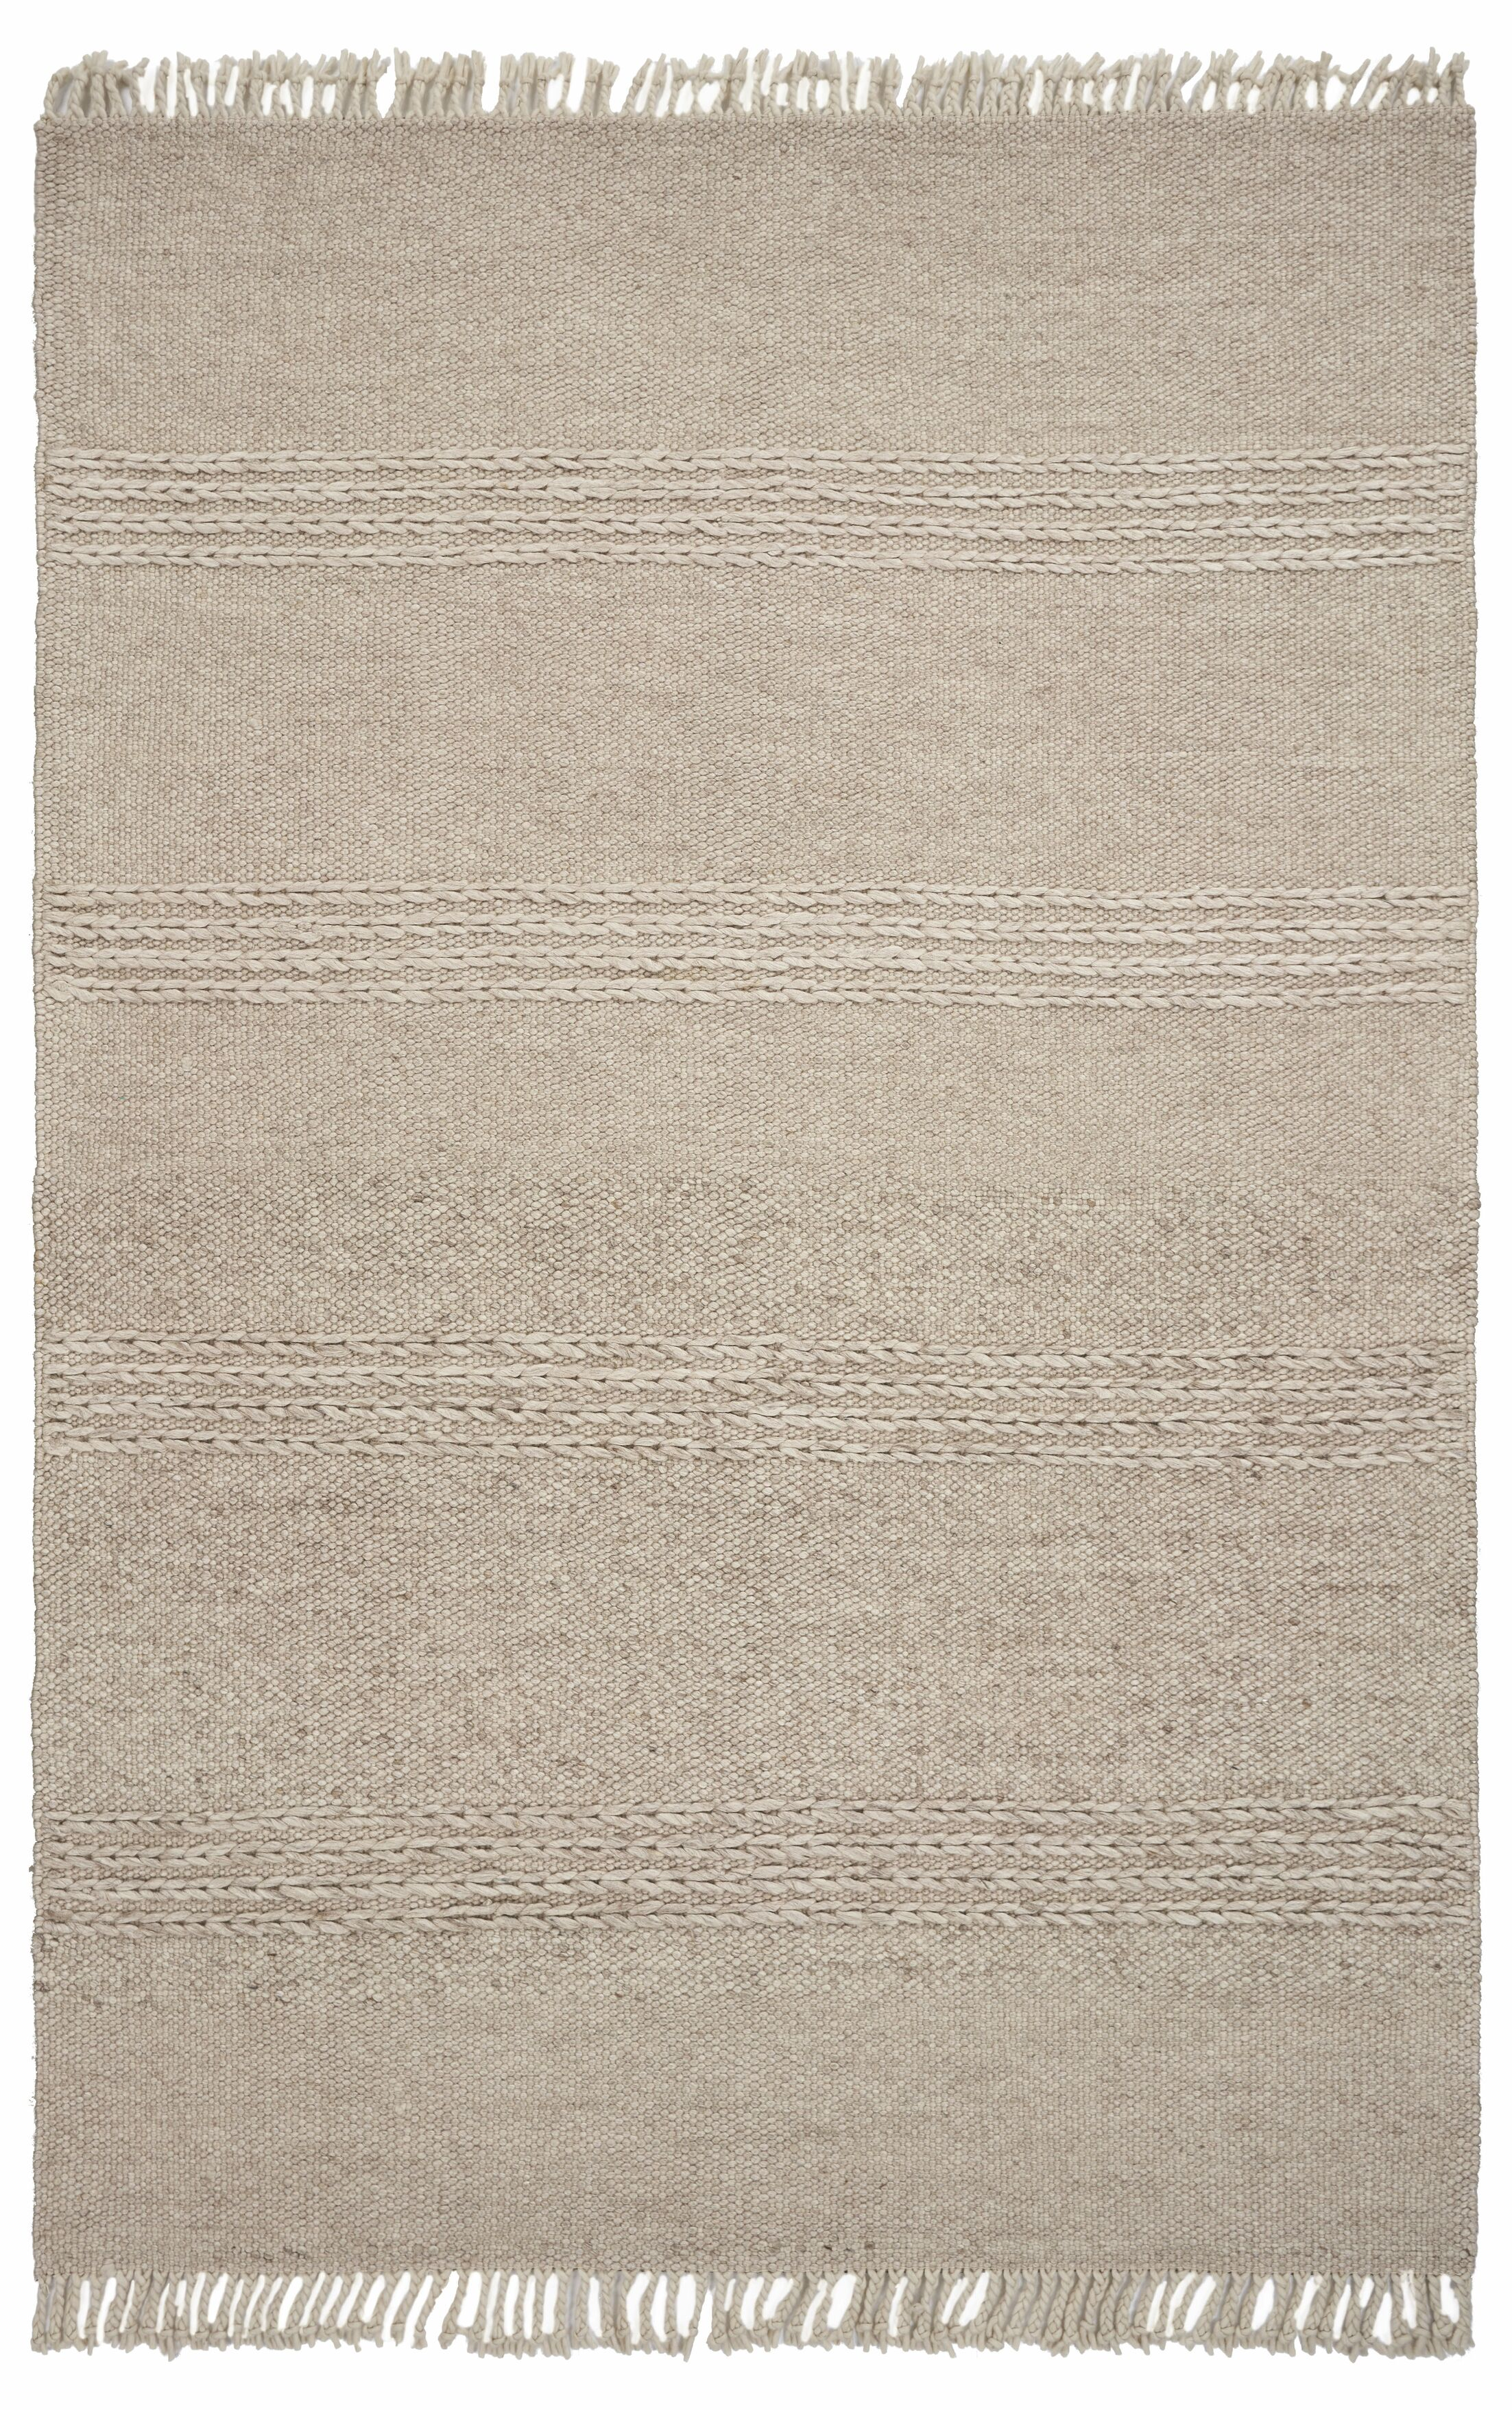 Hogan Cable Knit Hand-Woven Wool Beige Area Rug Rug Size: Rectangle 8'6